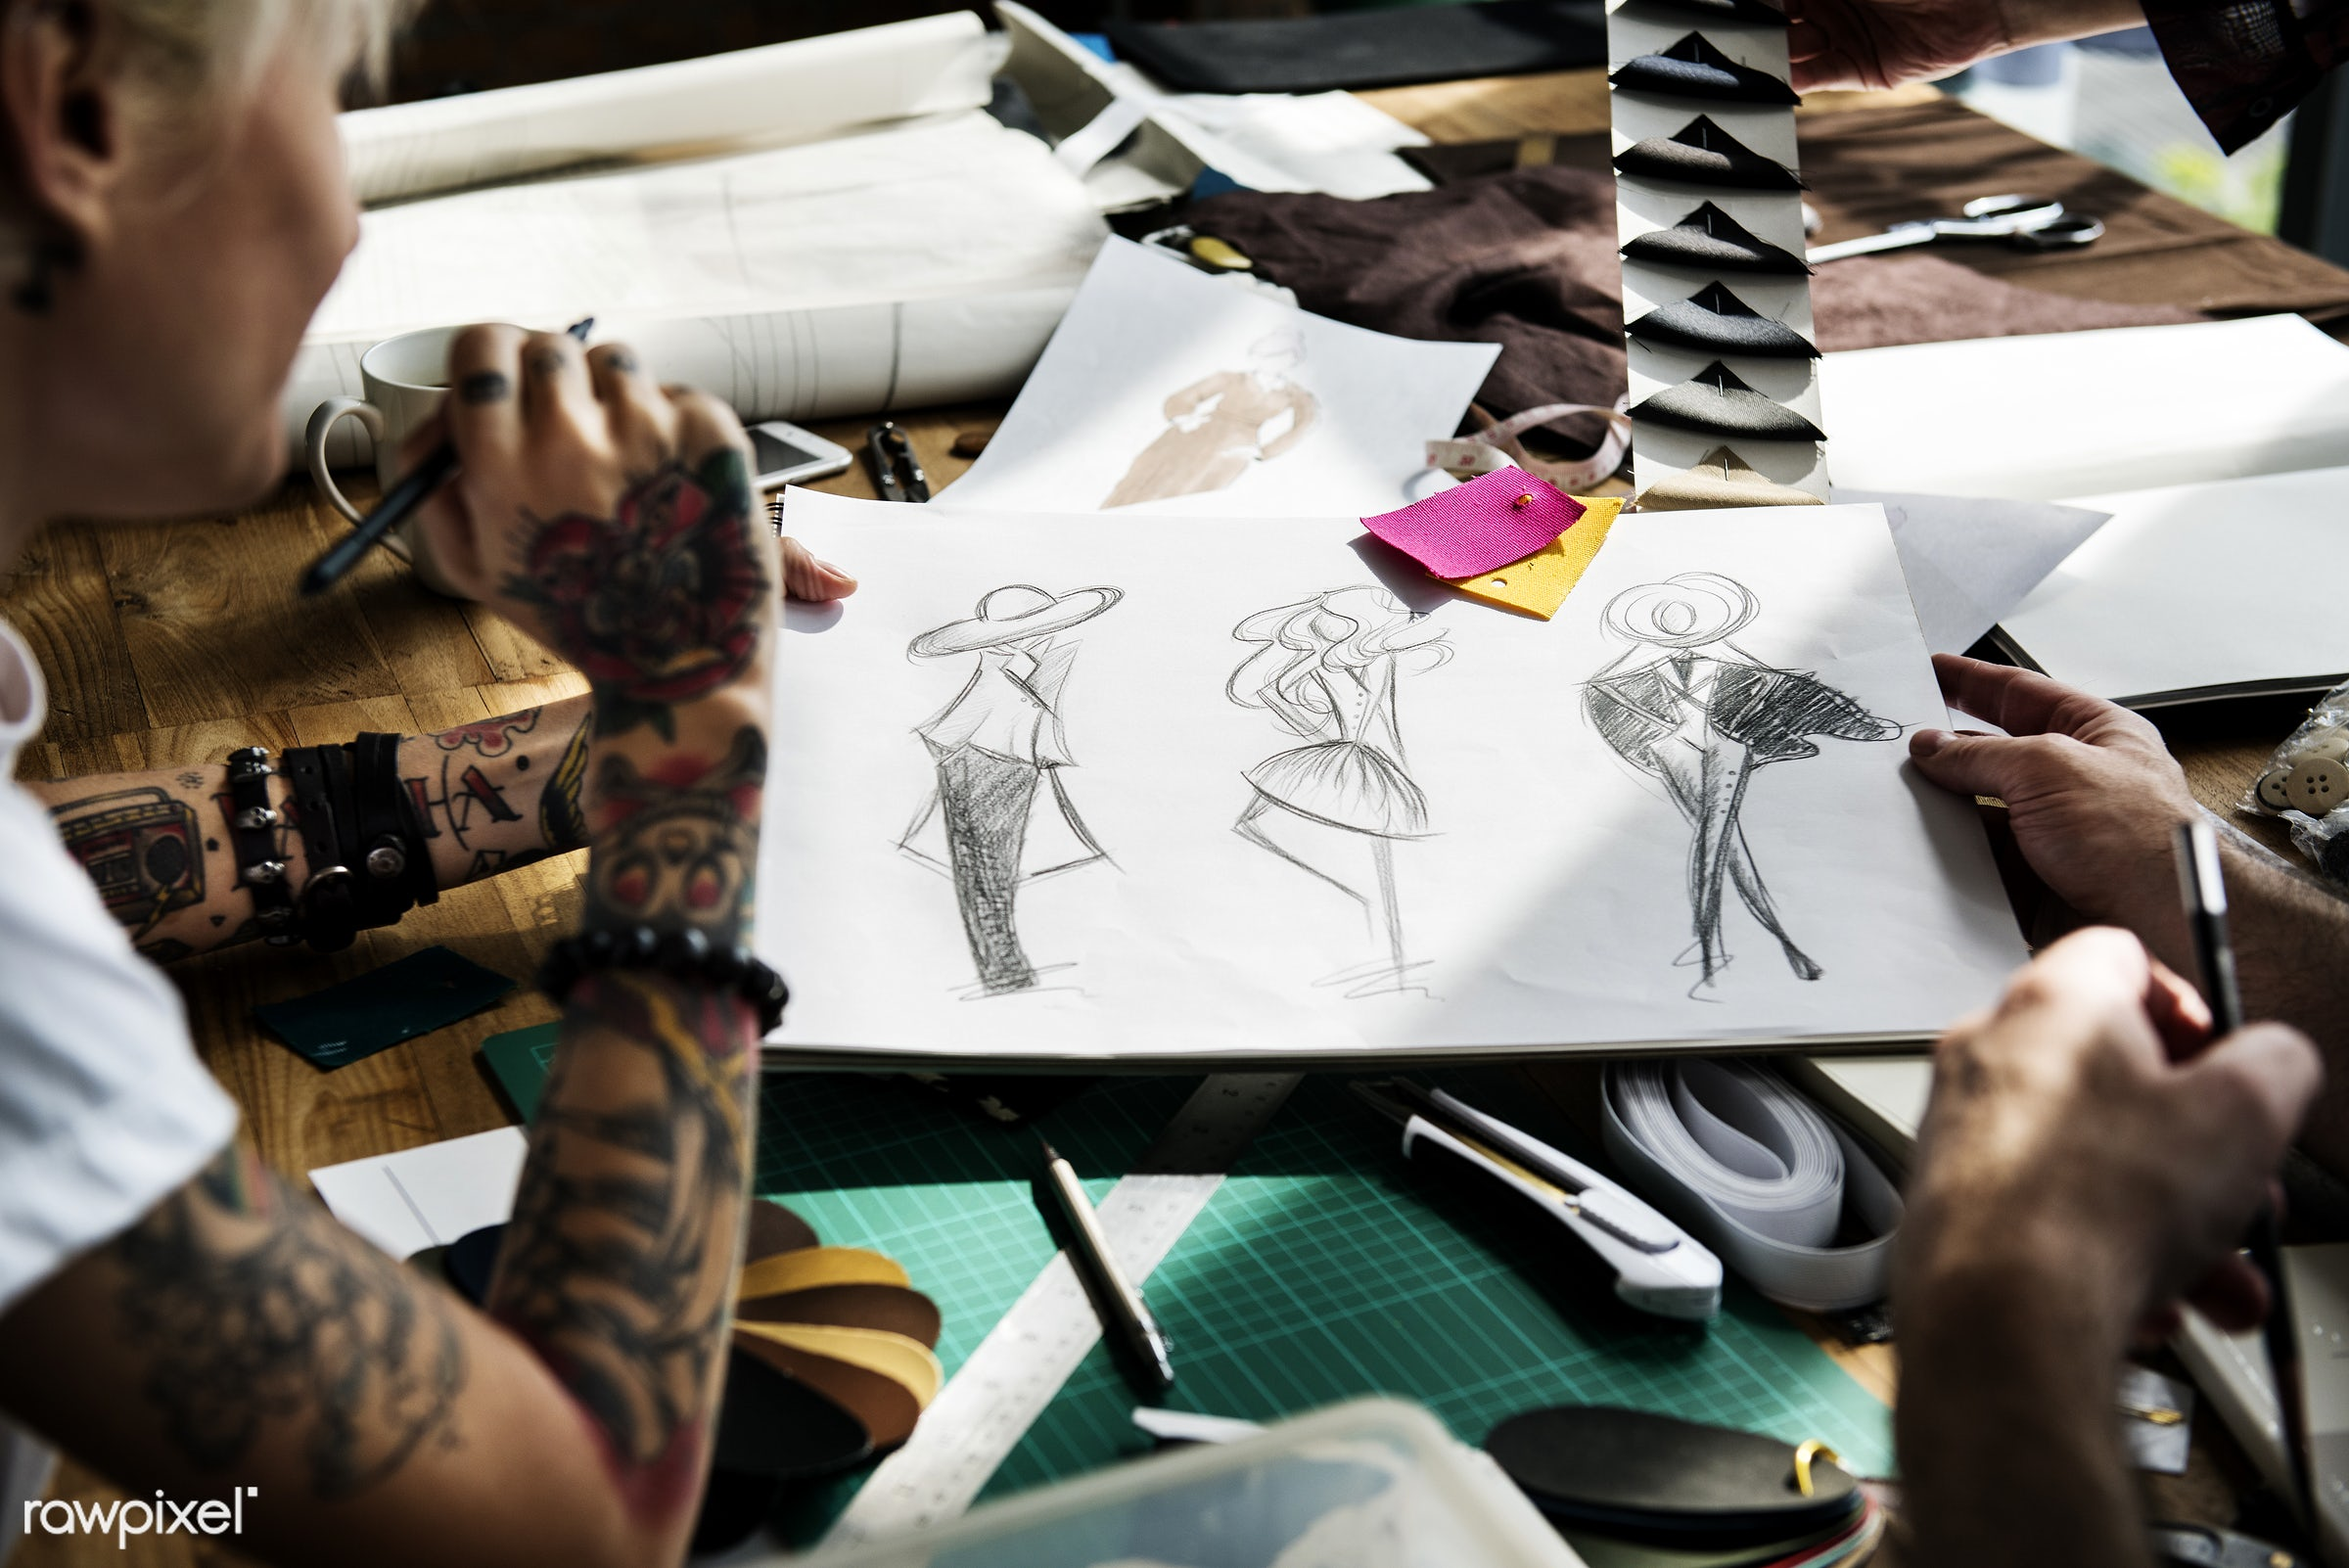 artist, business, busy, clothing, collaboration, collection, couture, craft, creative, design, designer, designing,...